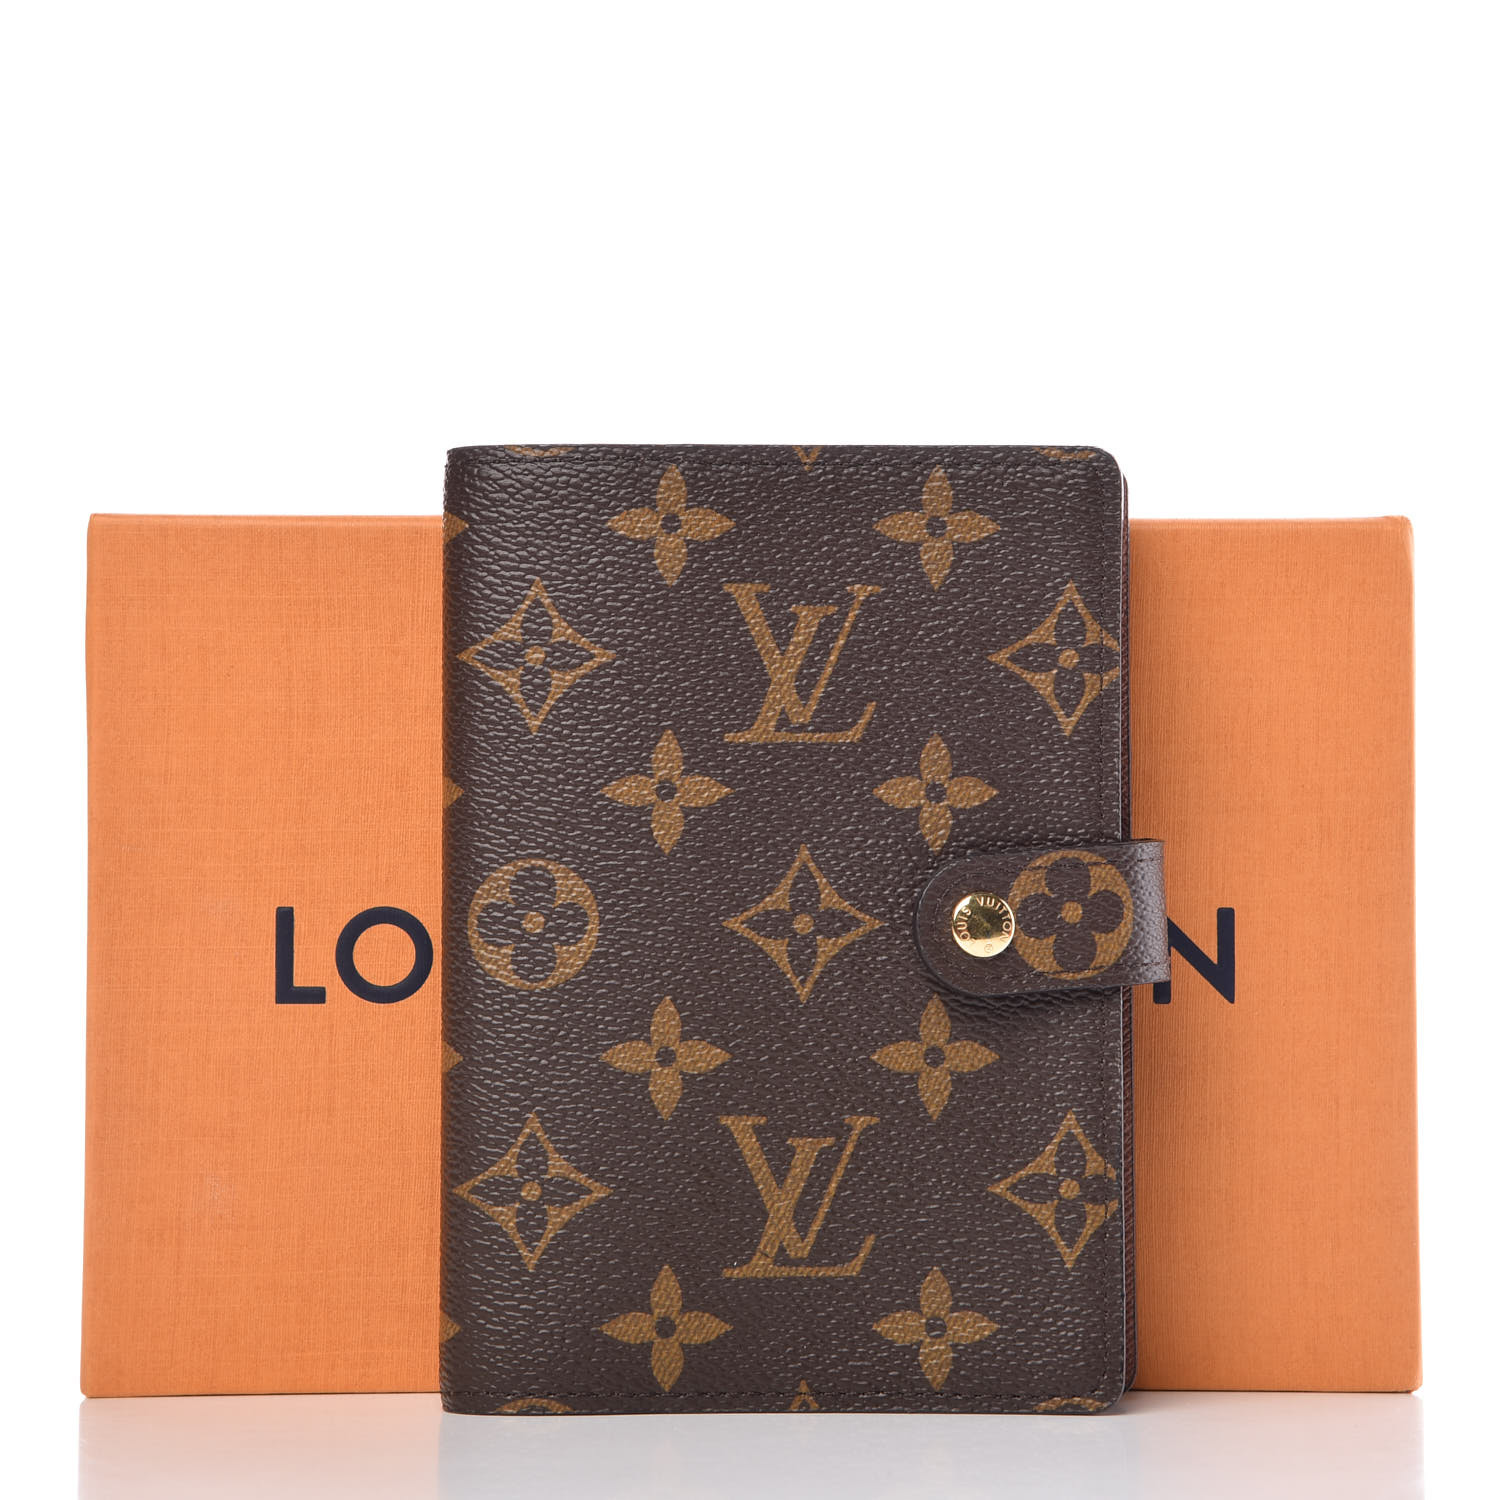 951ebf554649 LOUIS VUITTON Monogram Small Ring Agenda Cover. Pinch Zoom